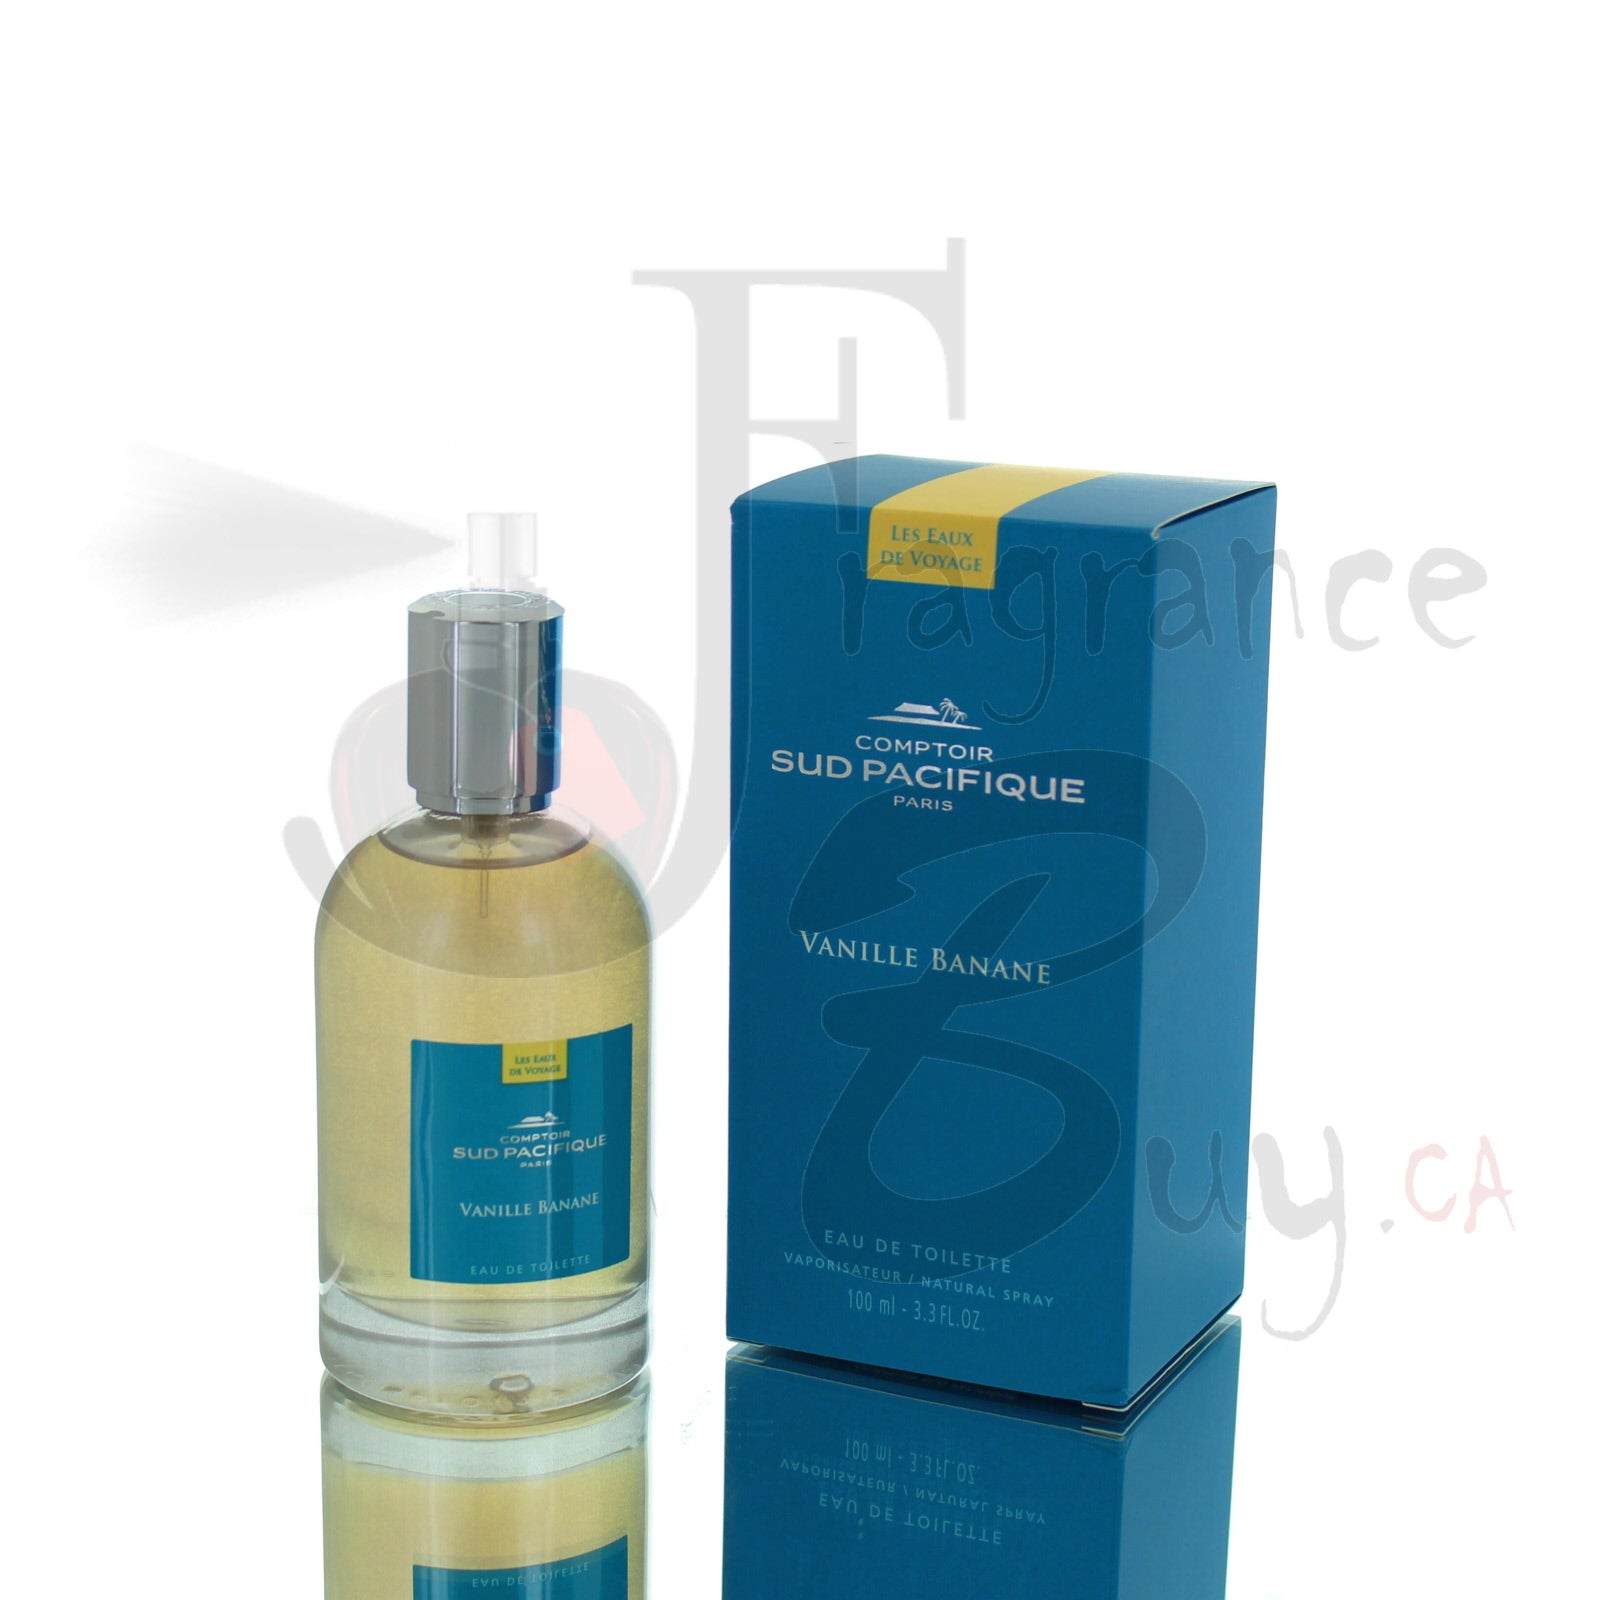 Comptoir Sud Pacifique Vanille Banane For Woman